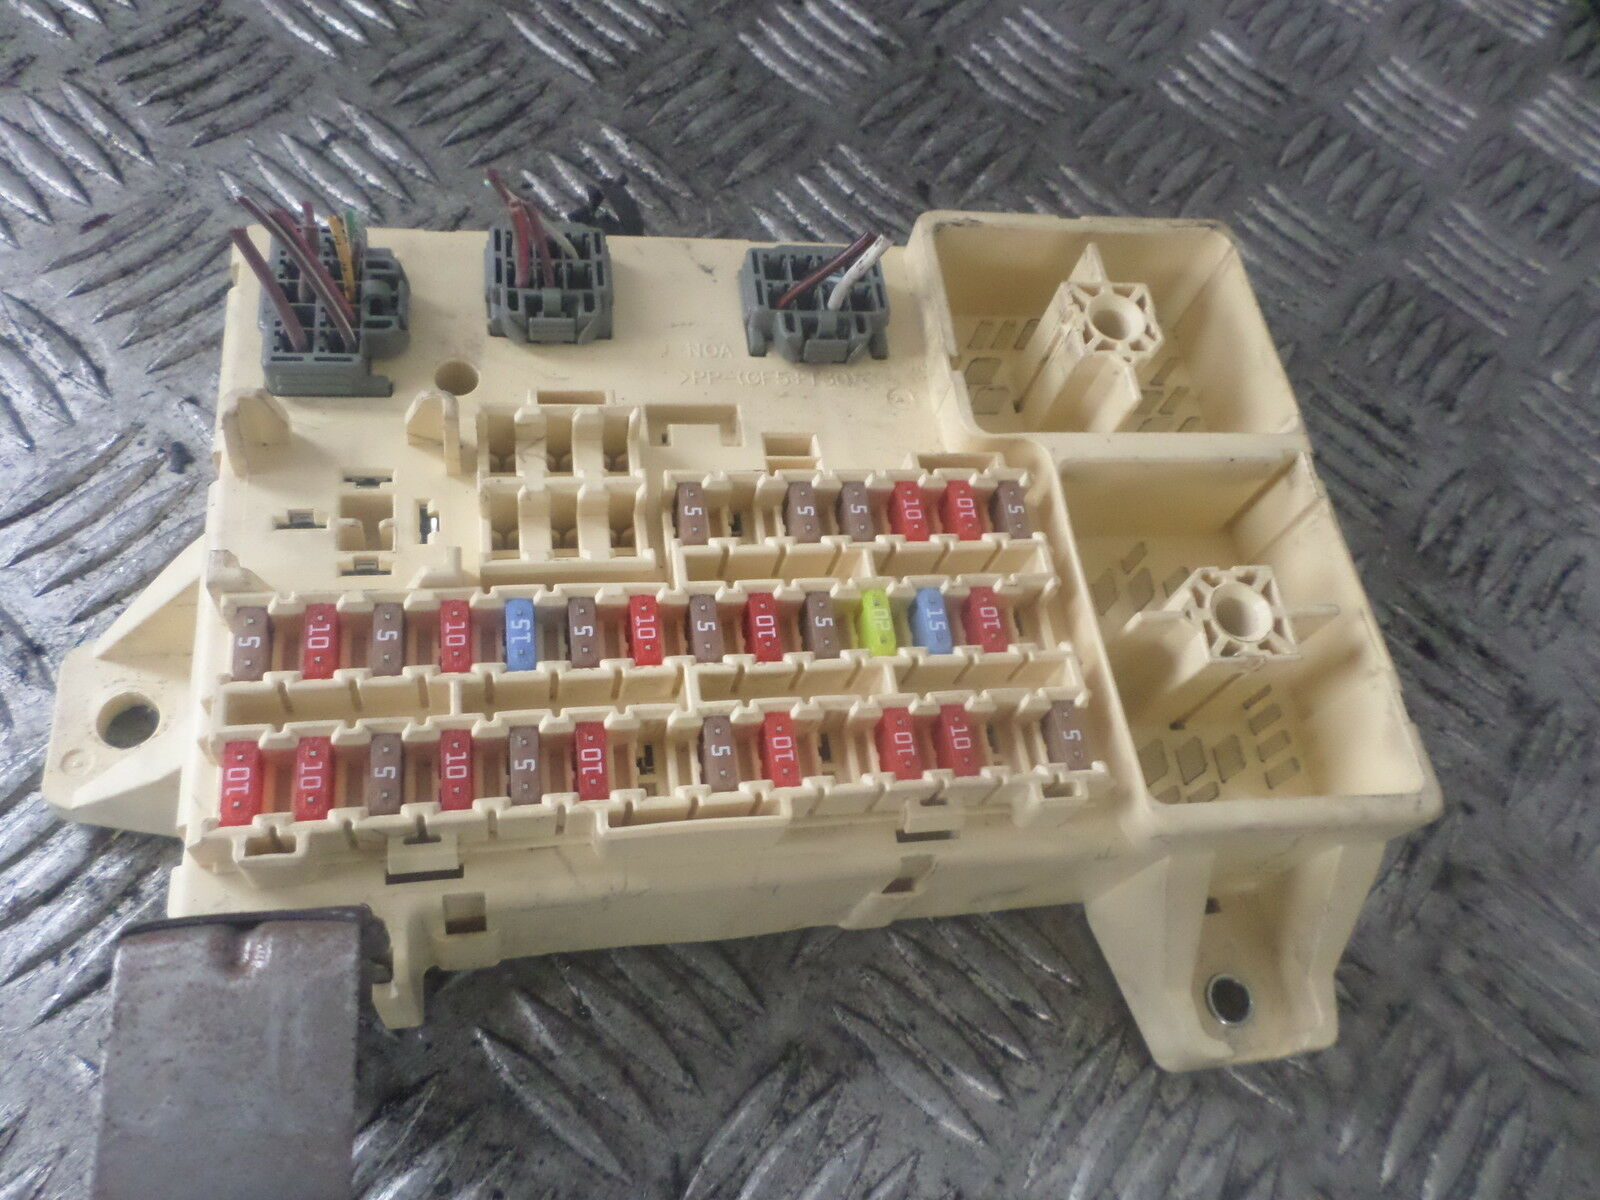 2008 Jaguar S Type 27 Diesel Interior Fuse Box 6r8t 14a067 Aa 1 Of 2only Available